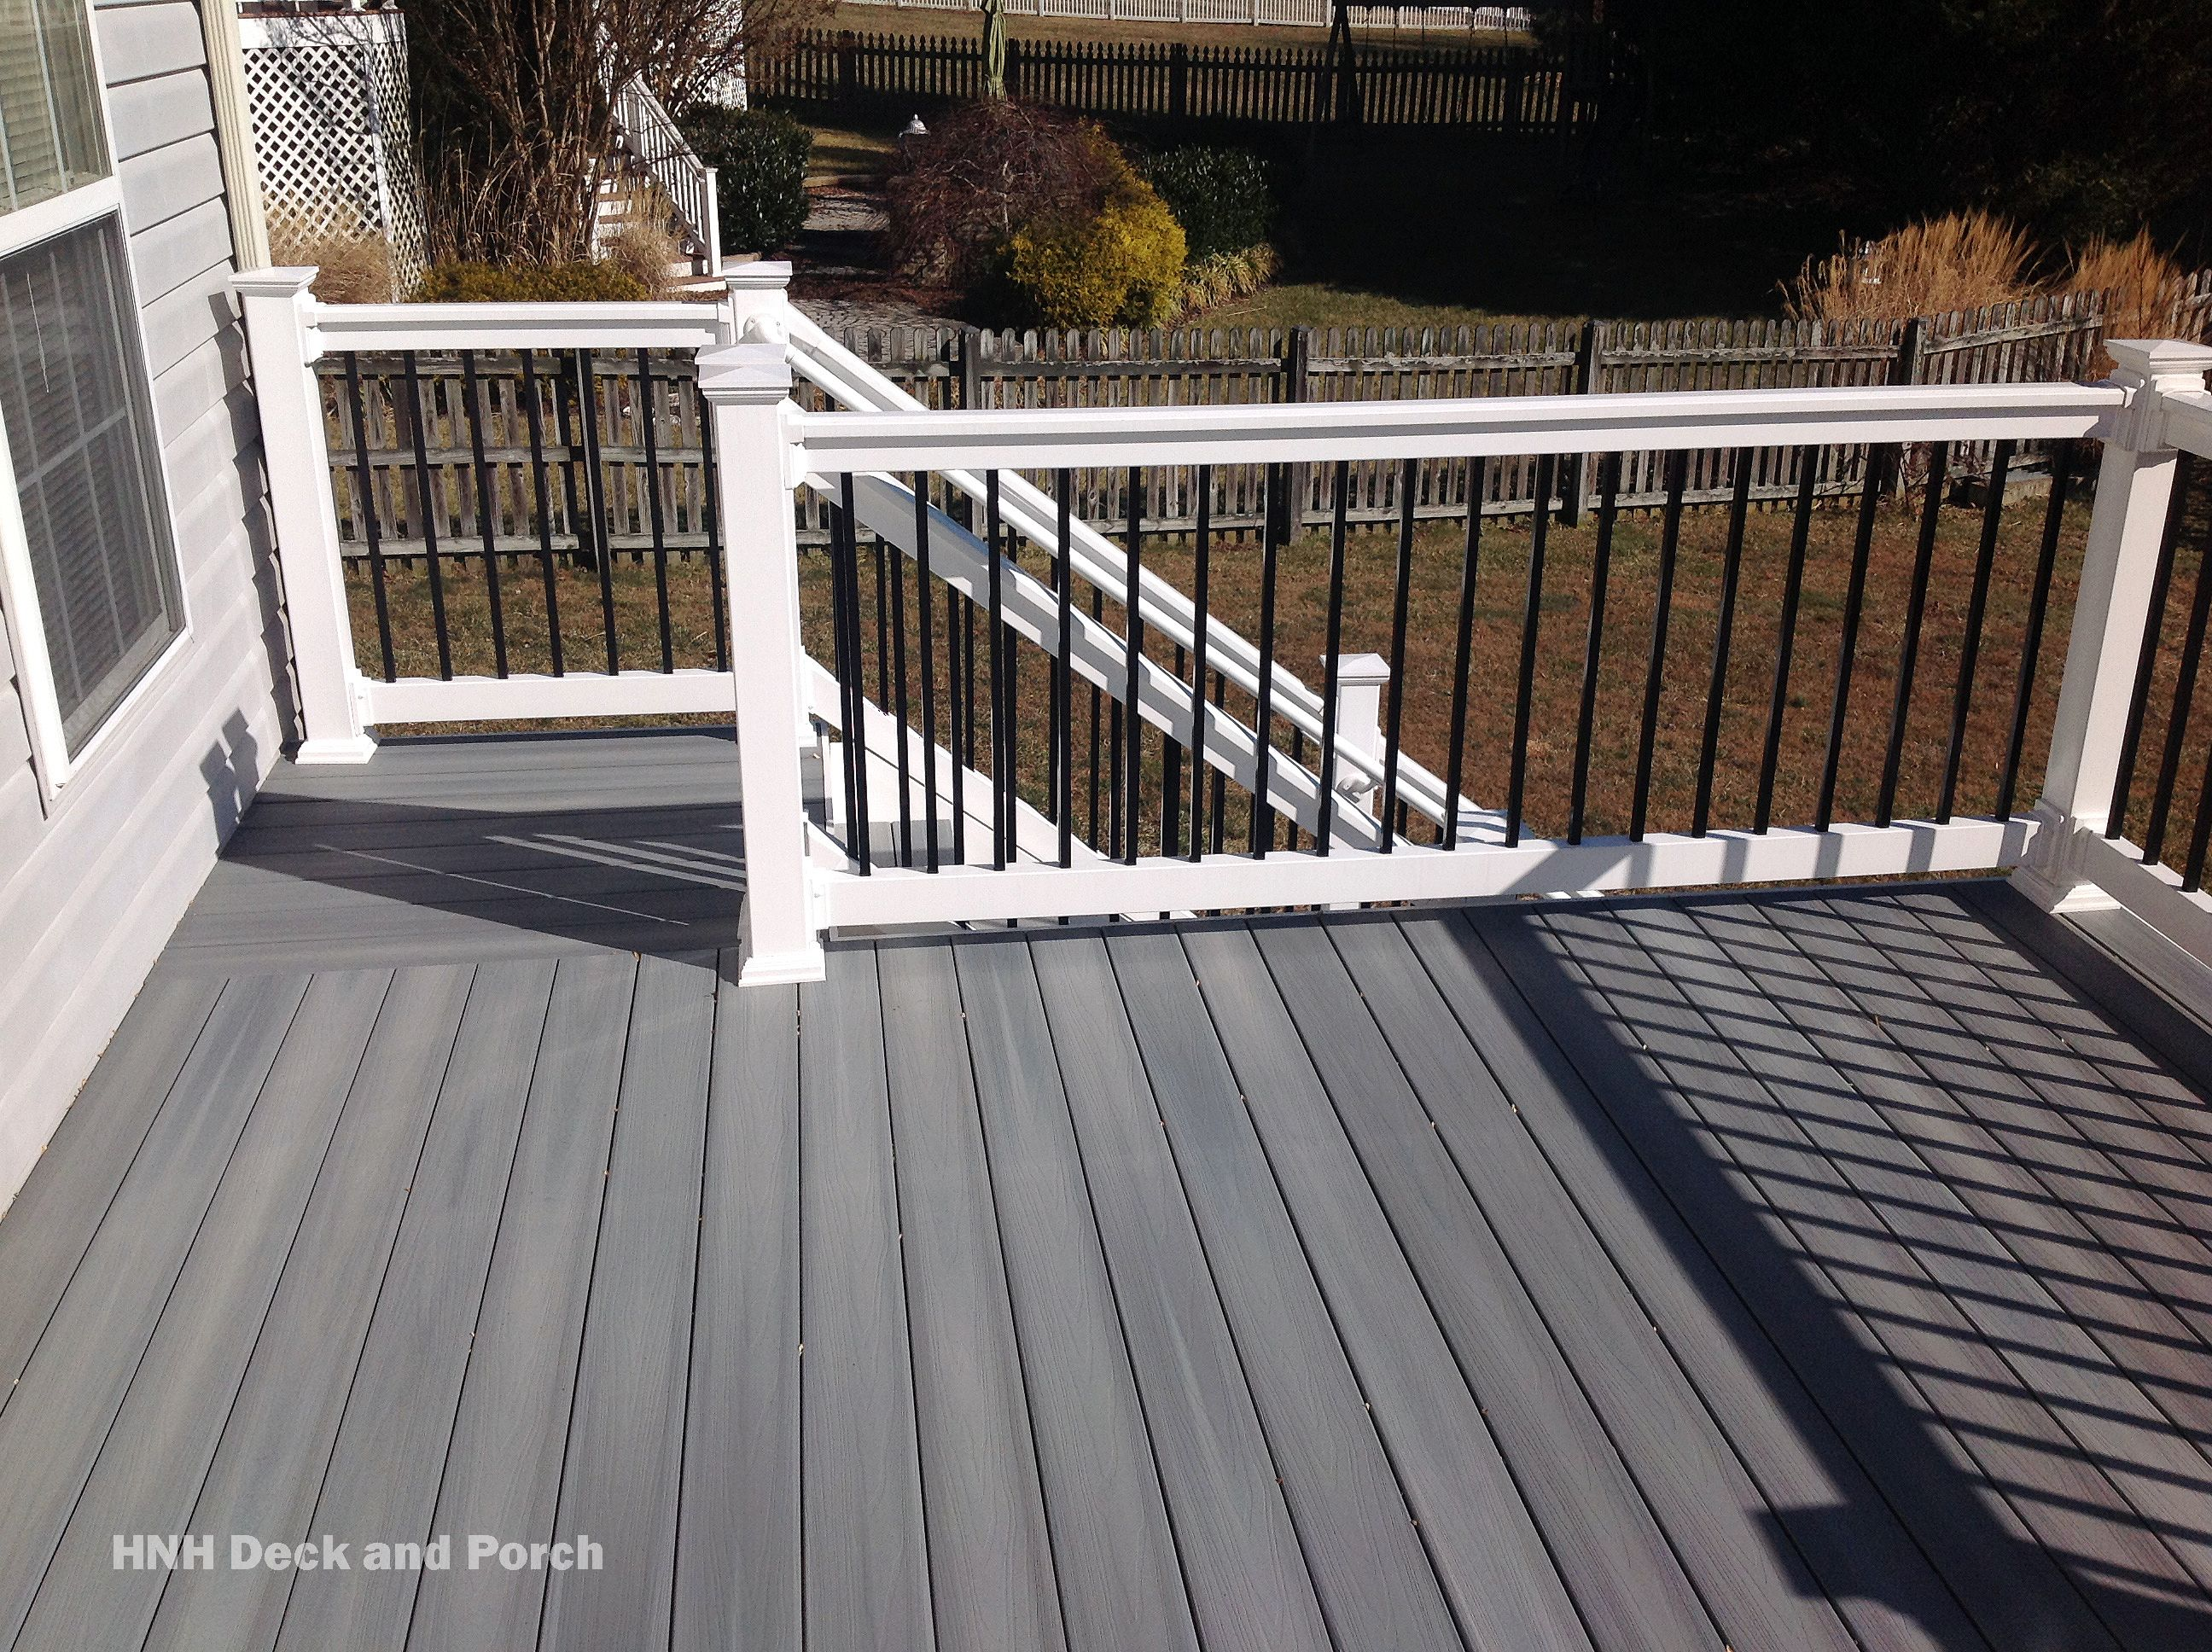 Composite Deck Using Fiberondecking Castle Grey Decking With White Pvc Railing And Black Square Aluminum